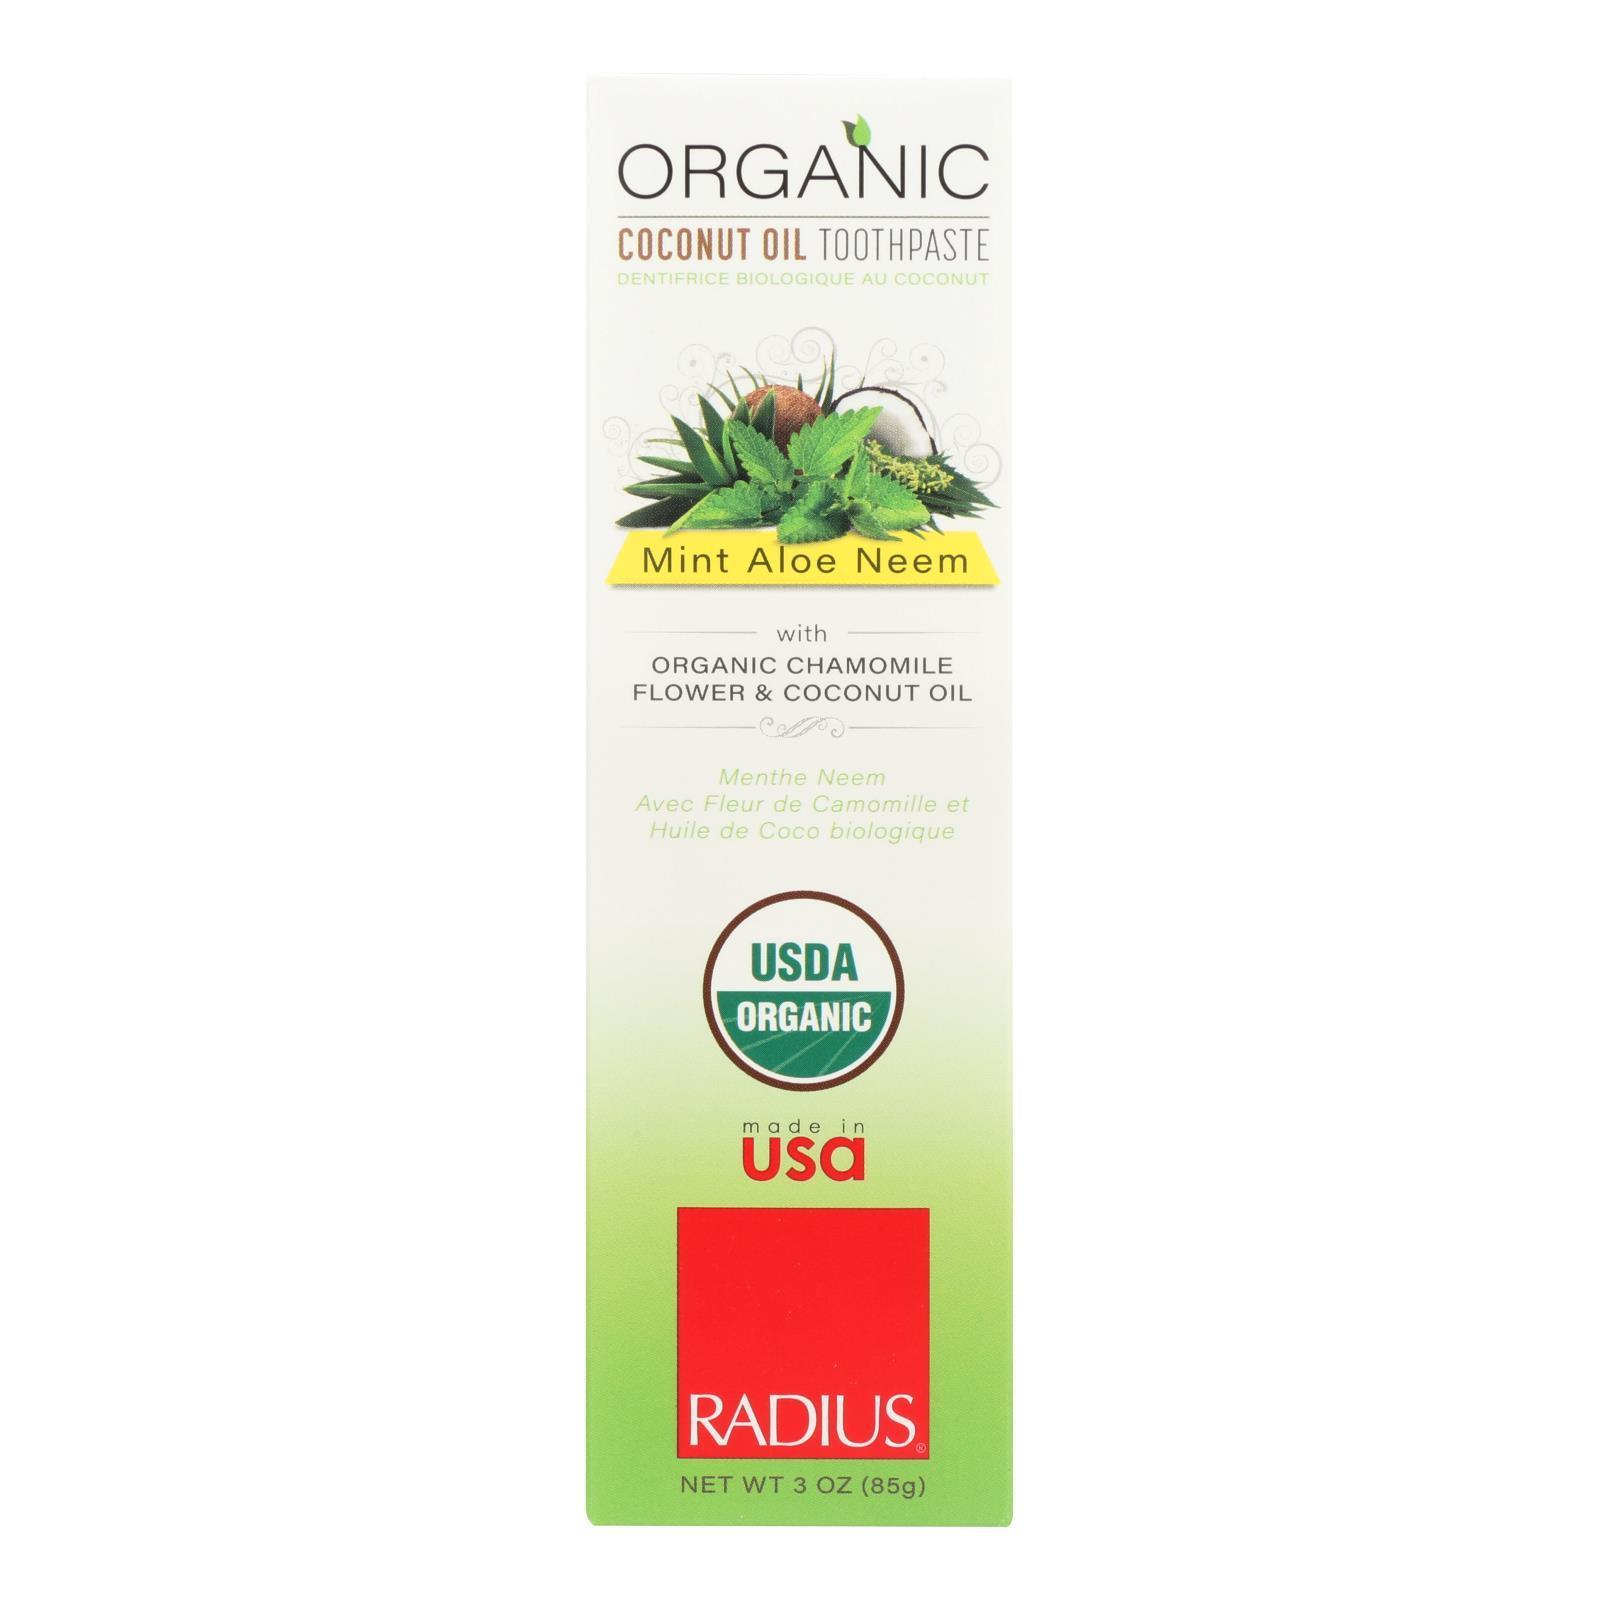 Radius Whitening Mint Aloe Neem Toothpaste  - 1 Each - 3 Oz - $6.60